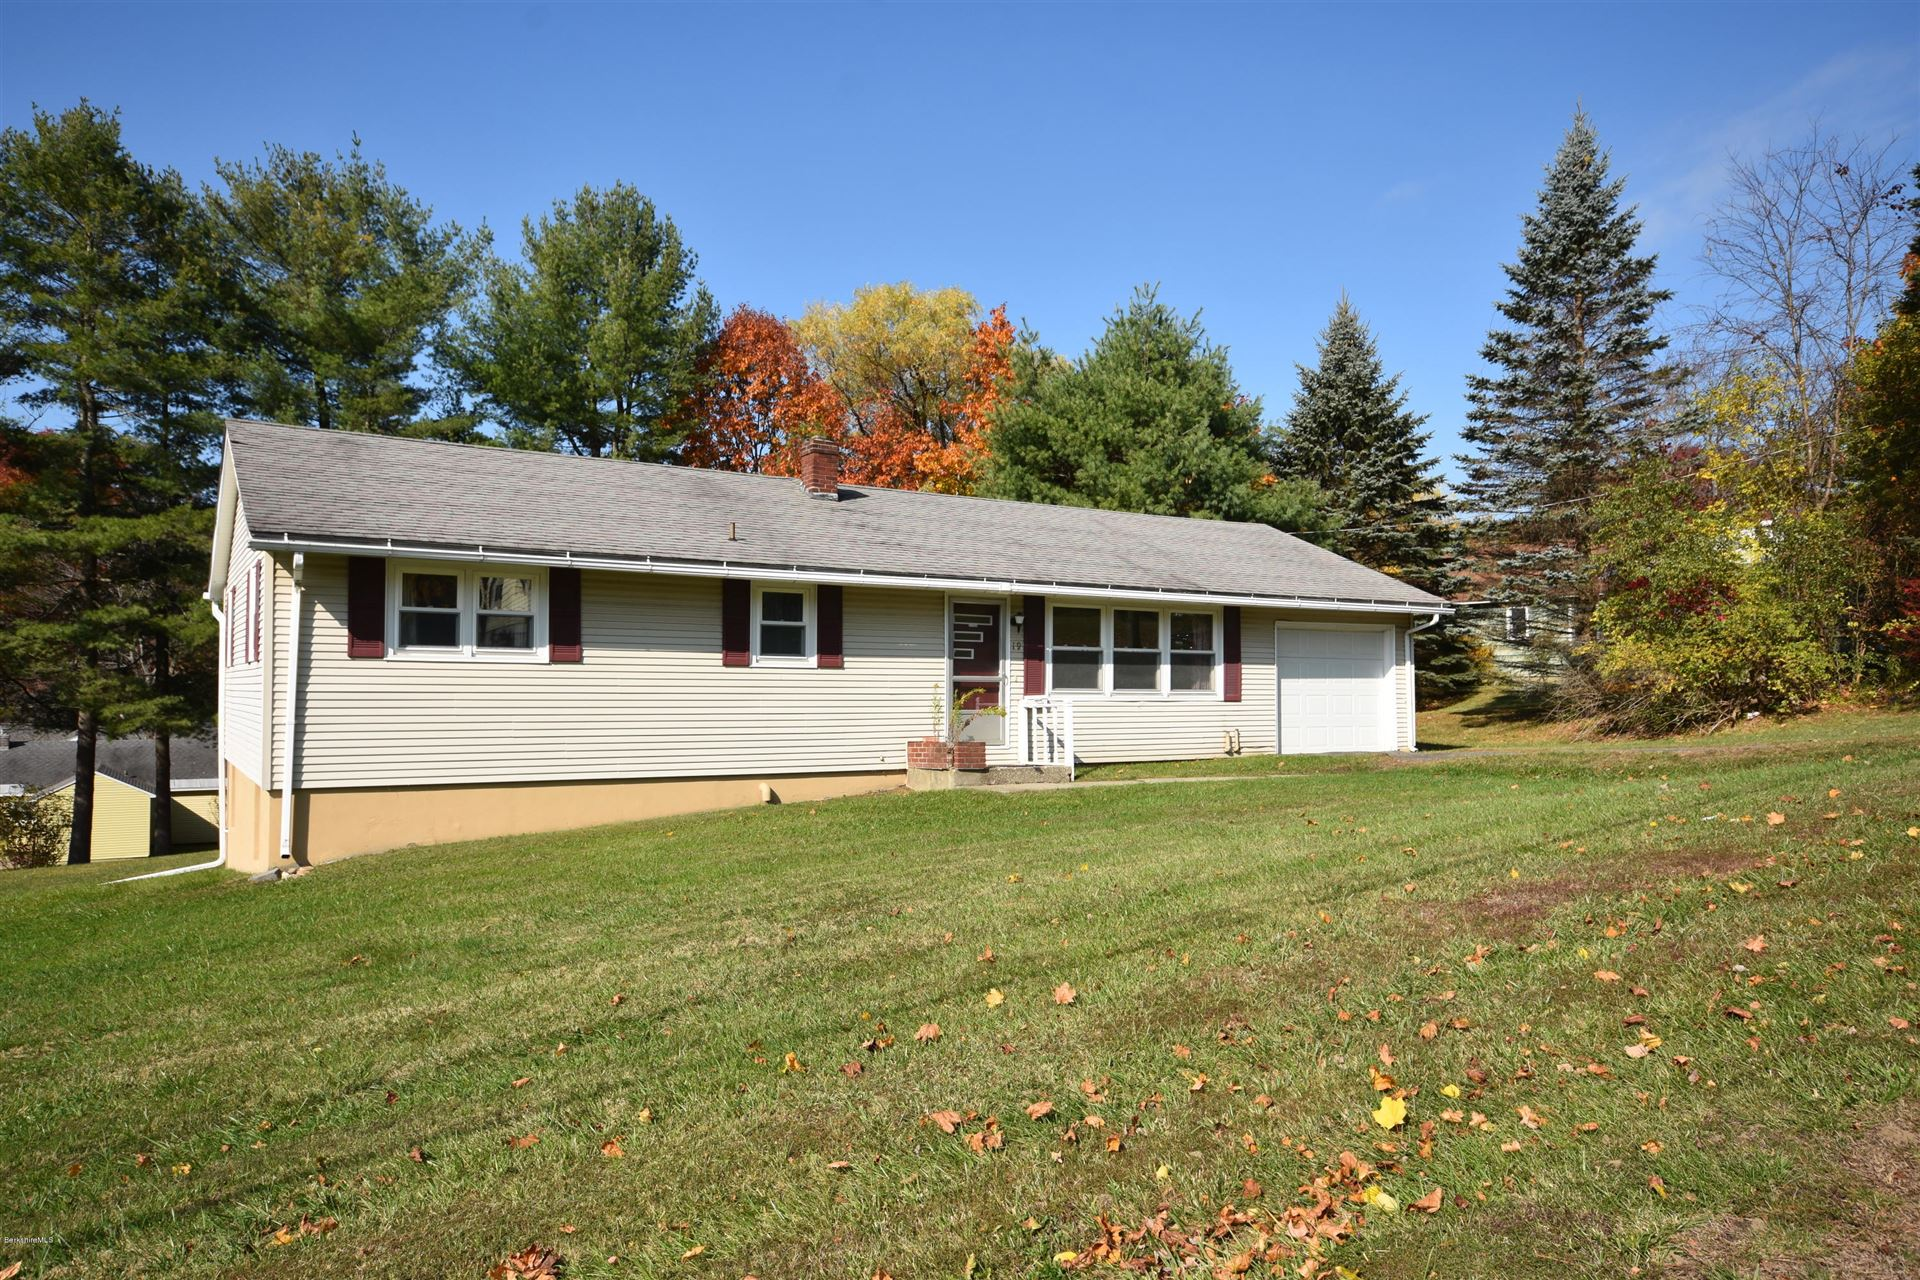 19 Skyview Dr, Pittsfield, MA 01201 - MLS#: 232738